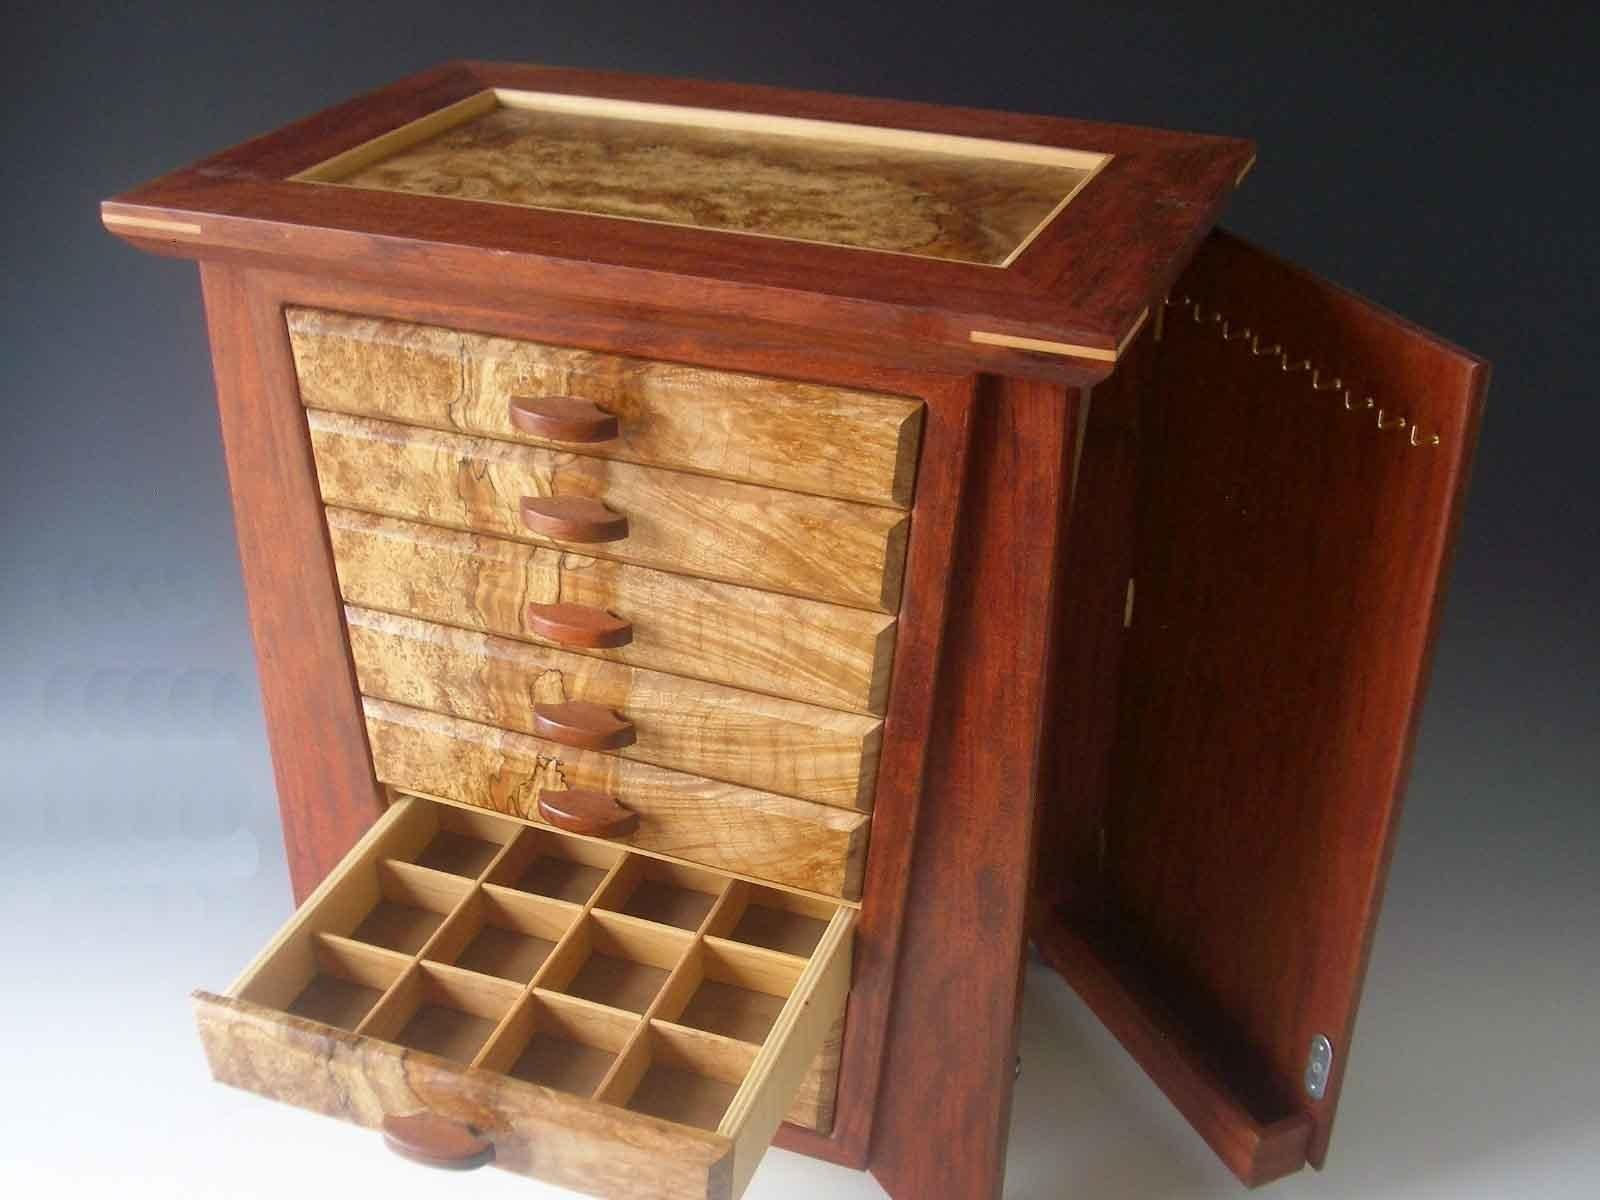 Wooden Storage Chest Handmade Jewelry Box Plans